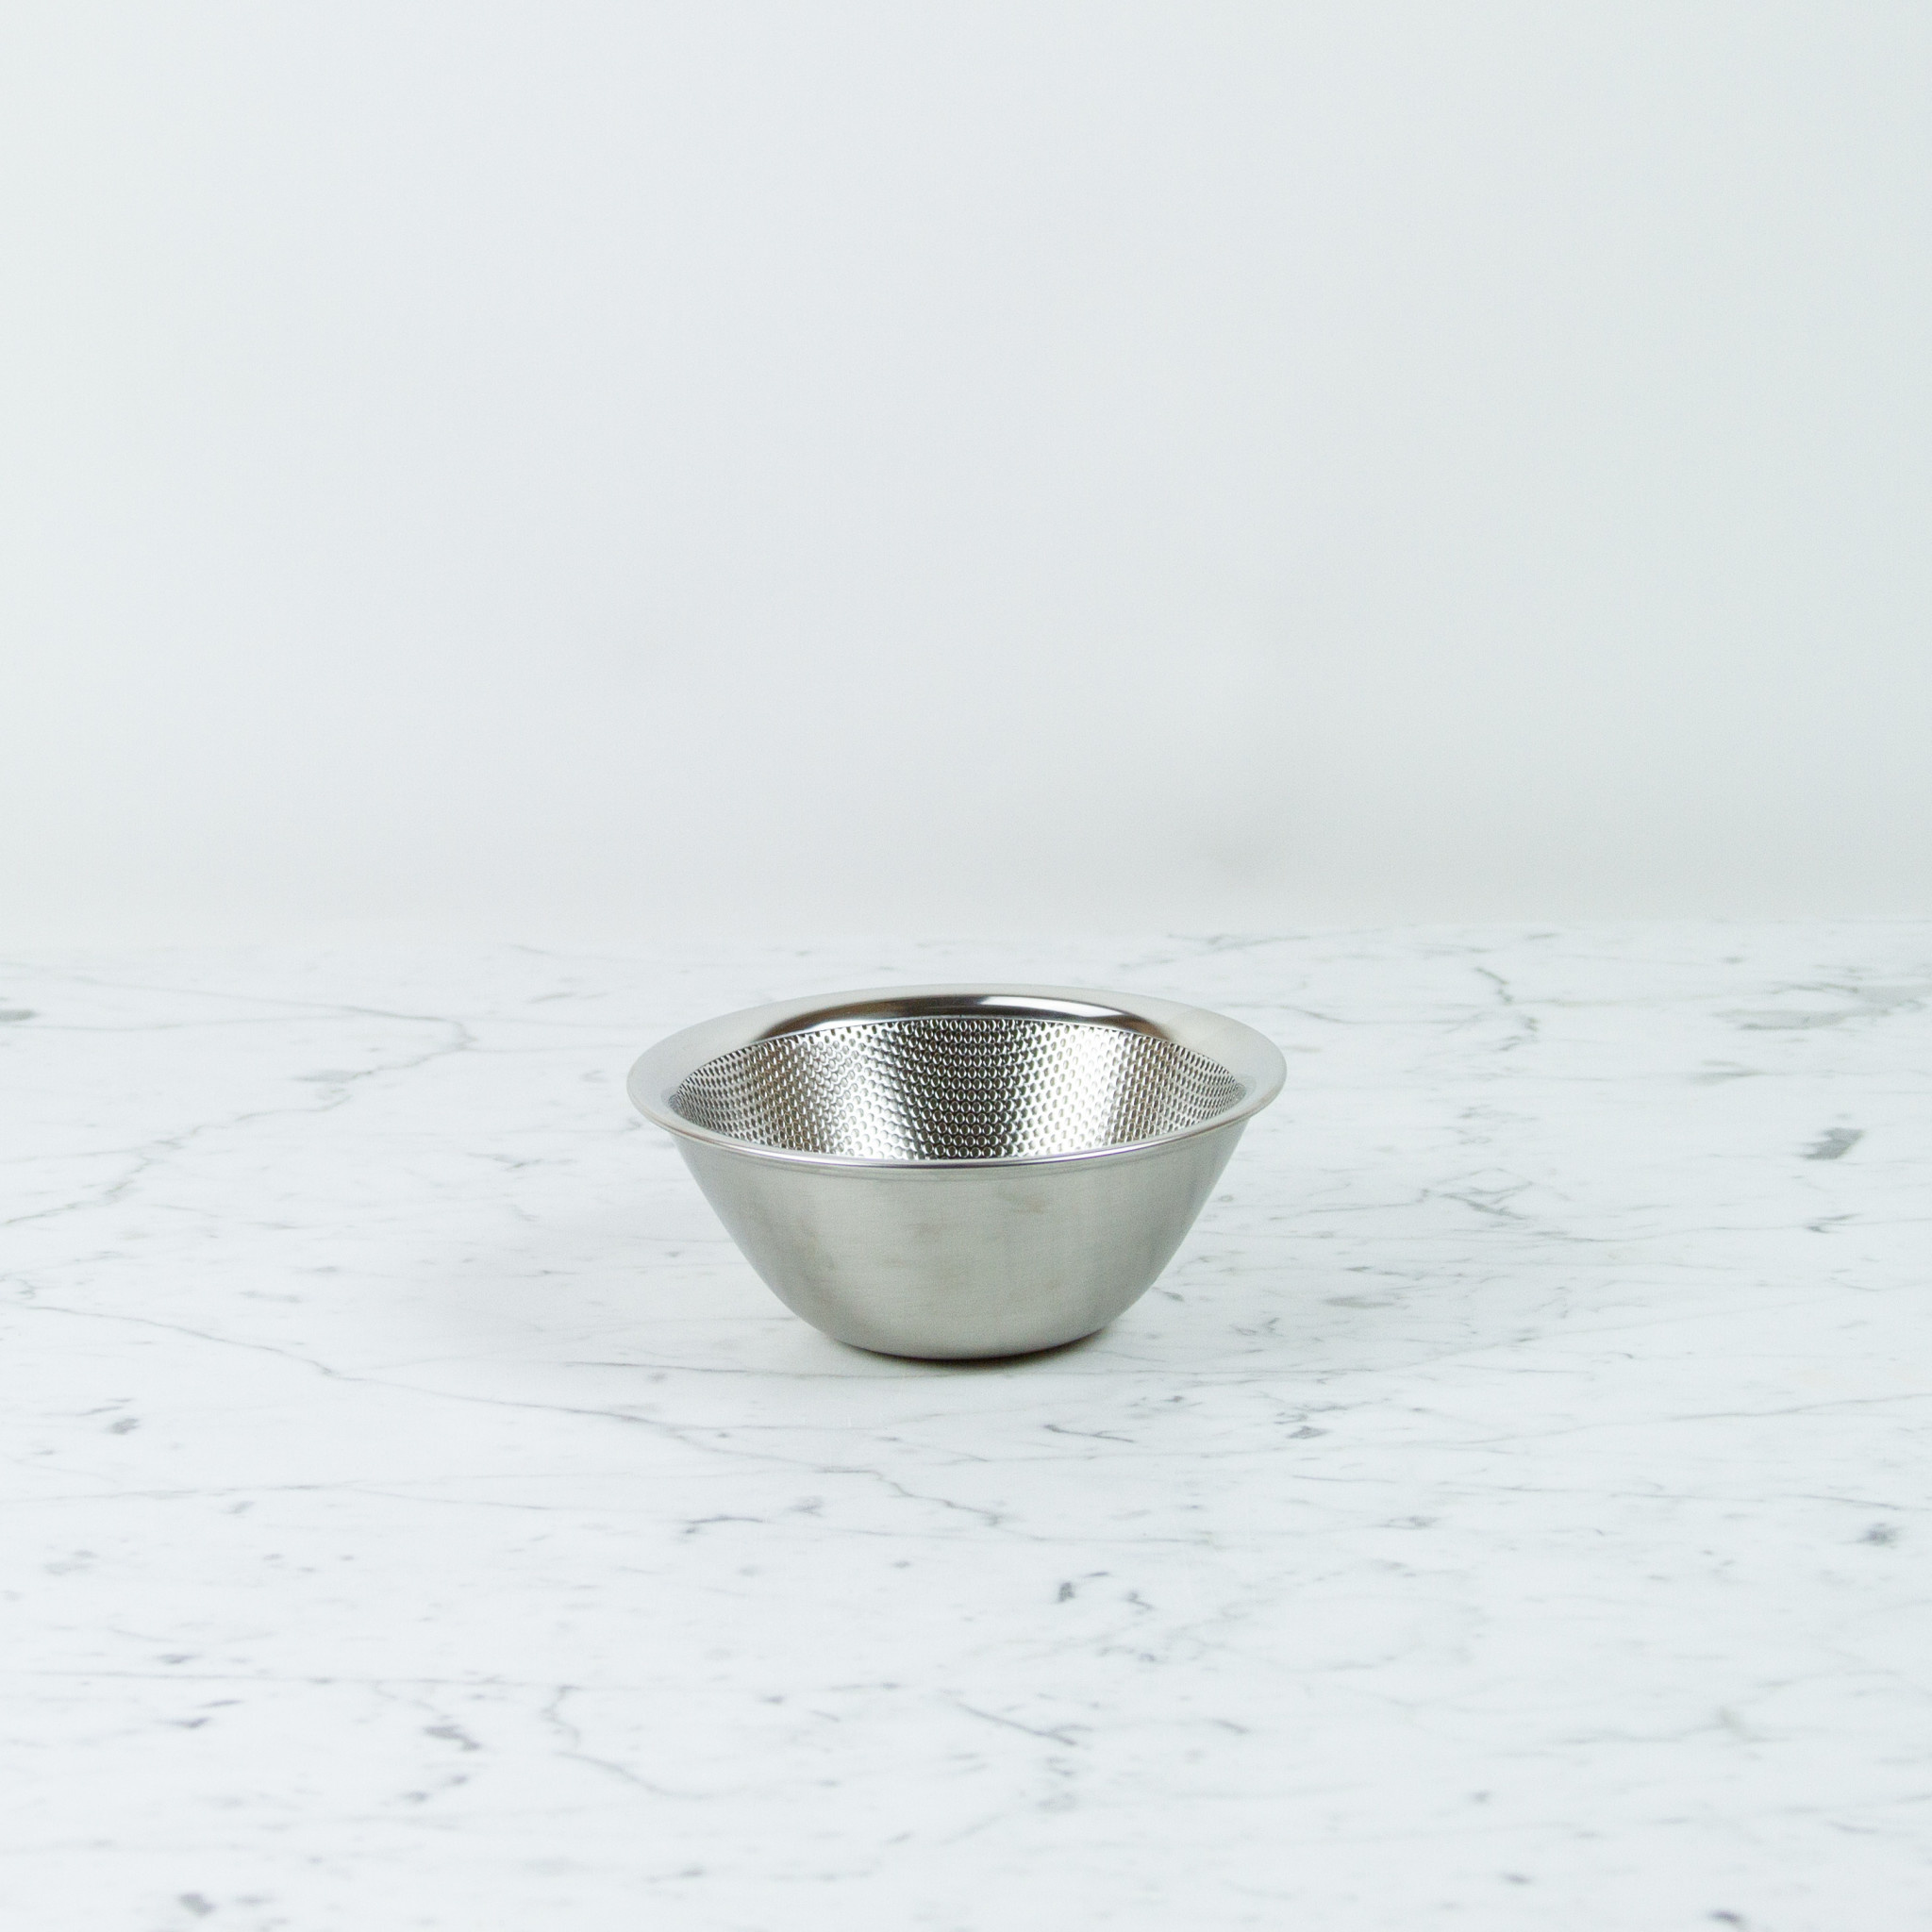 """Japanese Stainless Steel Punch Pressed Strainer - 7.5"""""""